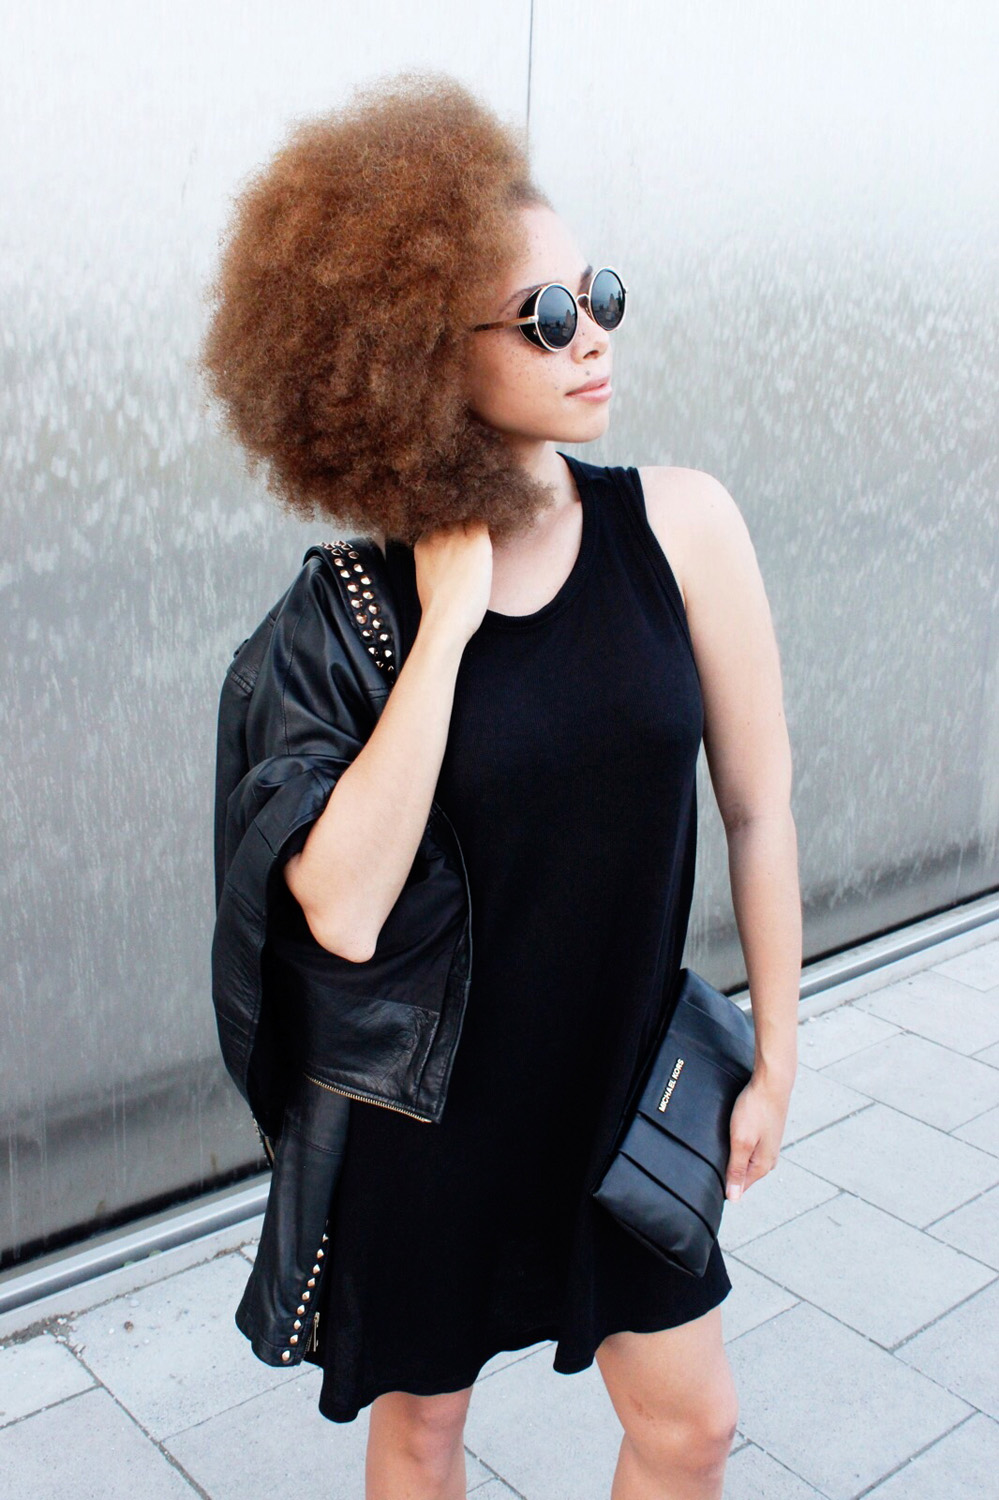 fatimayarie-afro-redcurls-blackdress-leatherjacket-michaelkors-clutch-img_5017